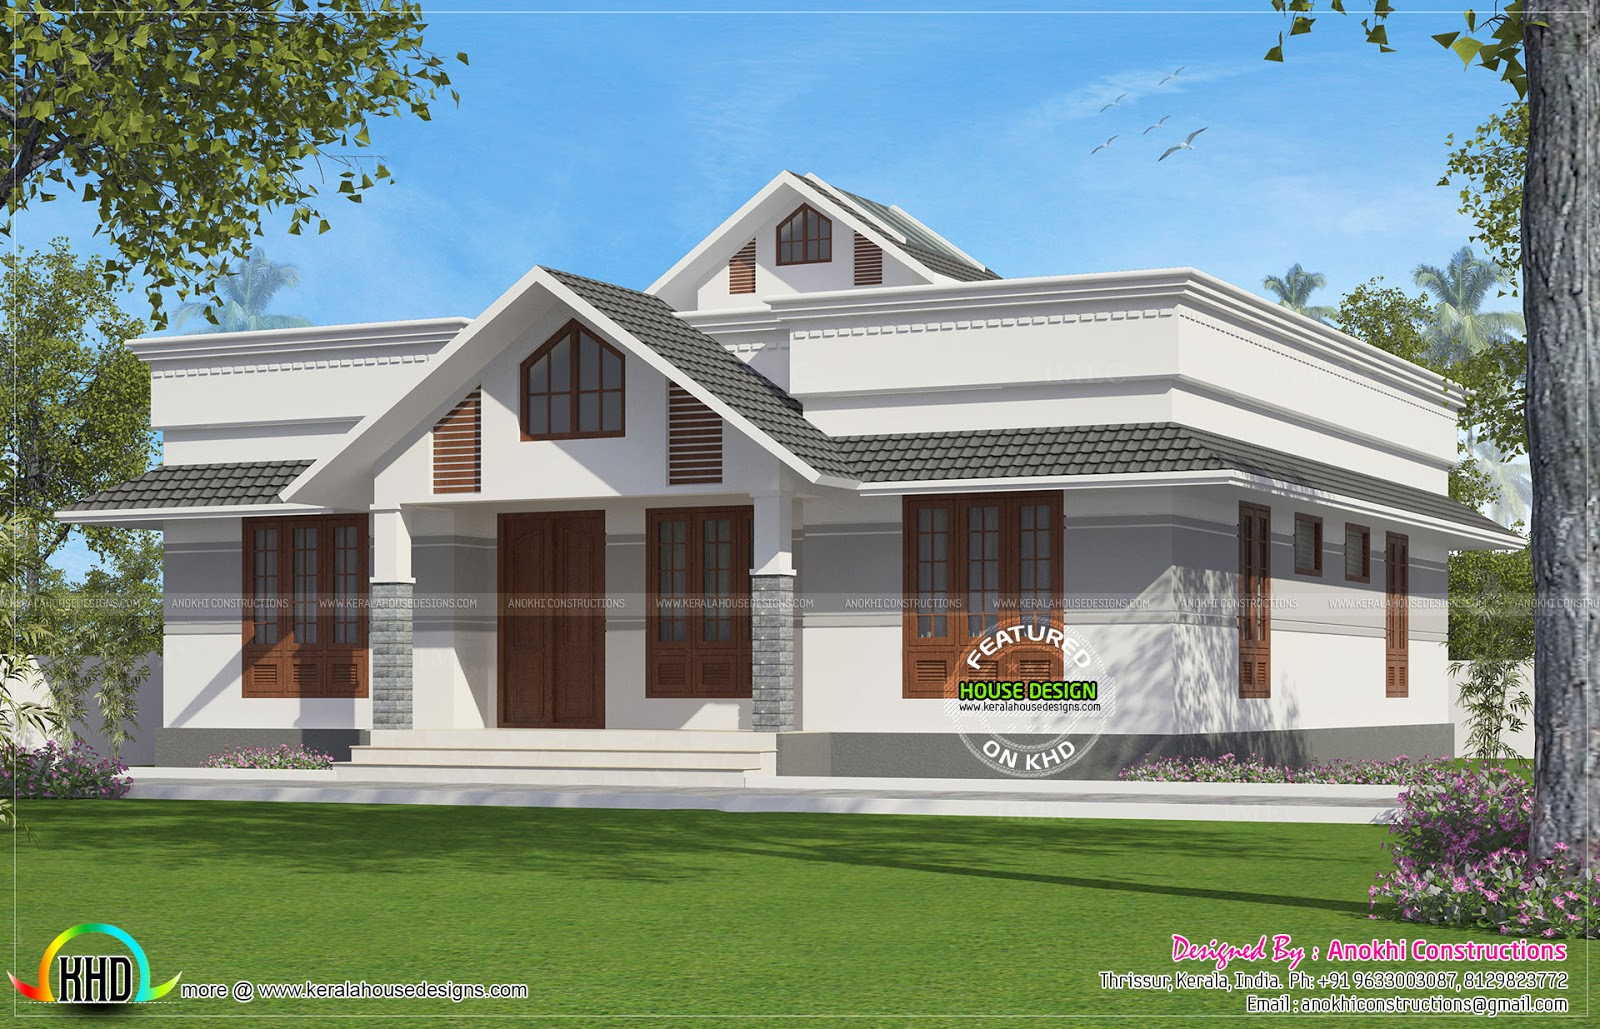 1330 square feet small house plan kerala home design and for House plans with estimated cost to build in kerala